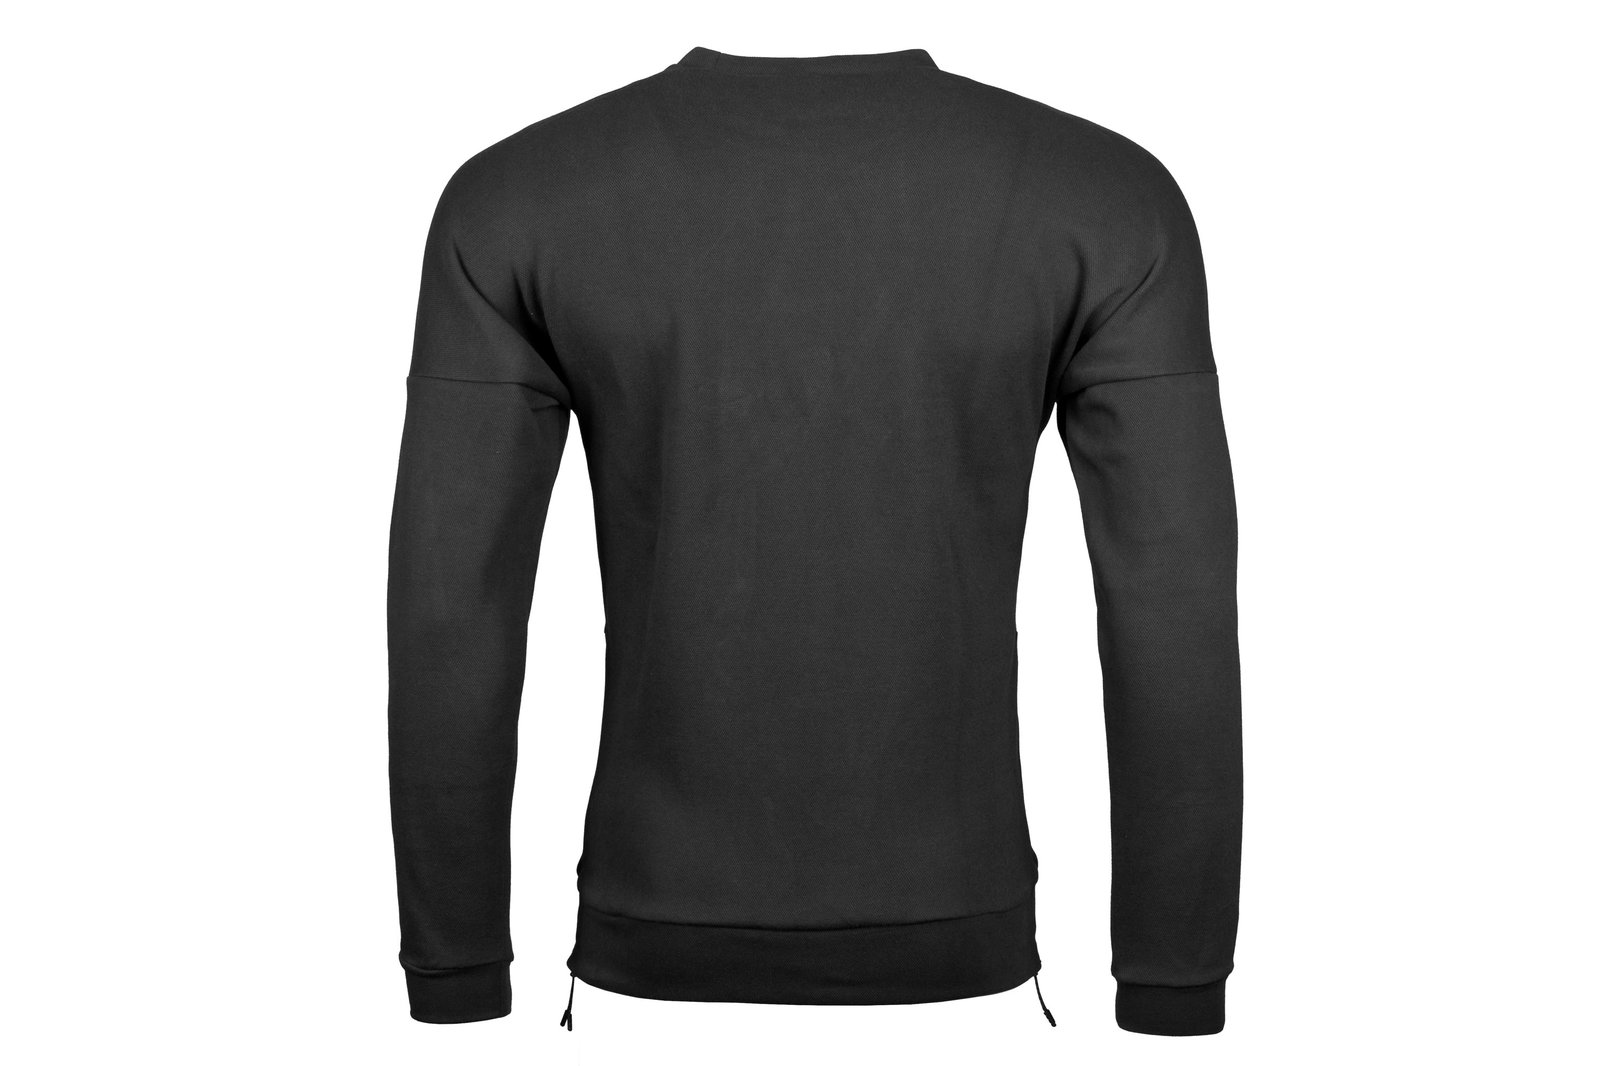 Sweatshirt Park Top Crew Mens Eden Adidas Rugby Training Grey Sports WSFpP6nq